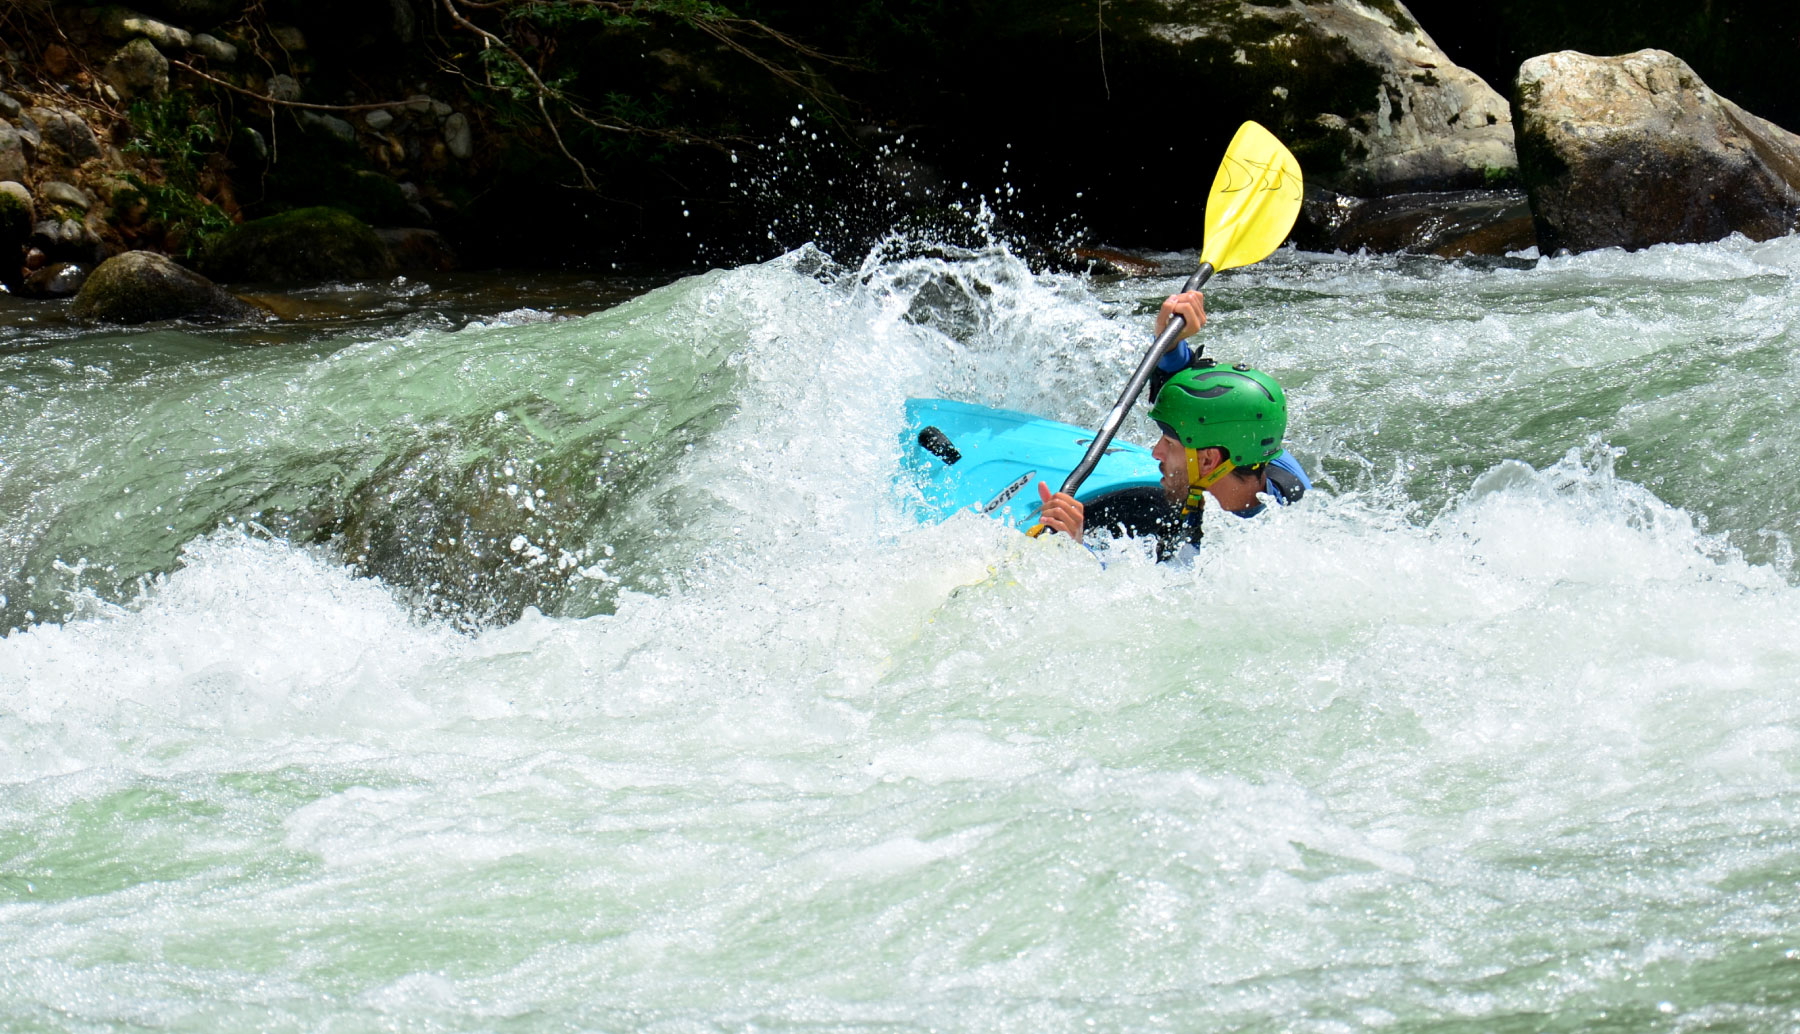 Whitewater kayak ecuador | Kayak guided tour South america